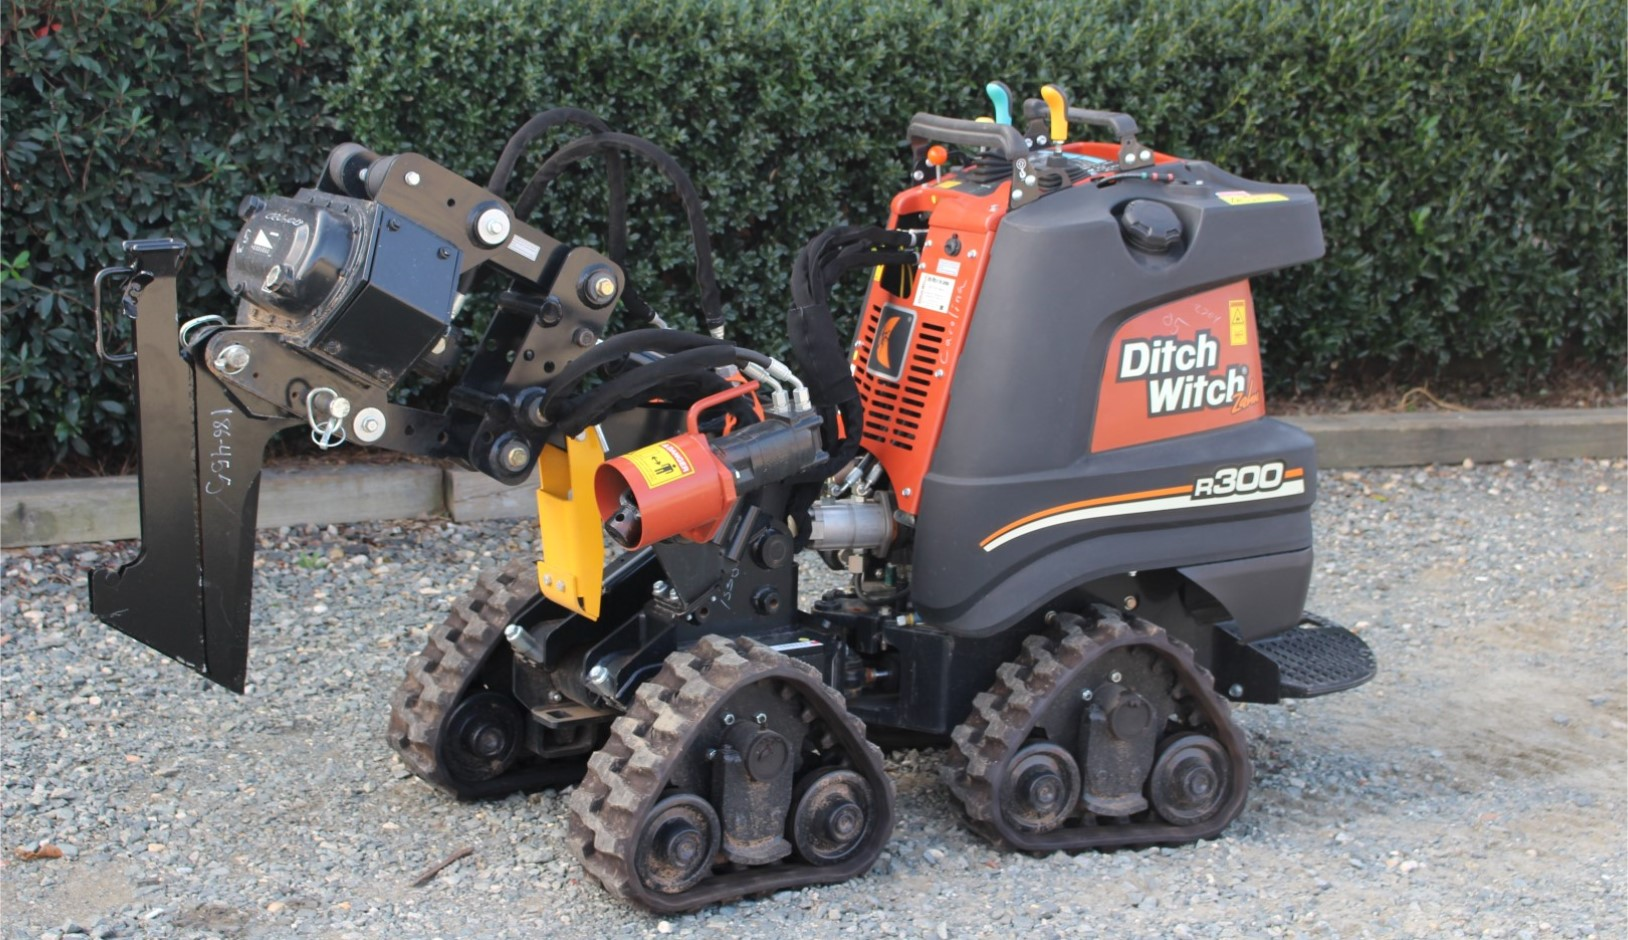 New, Ditch Witch, Zahn R300 Track Plow, Skid Steers